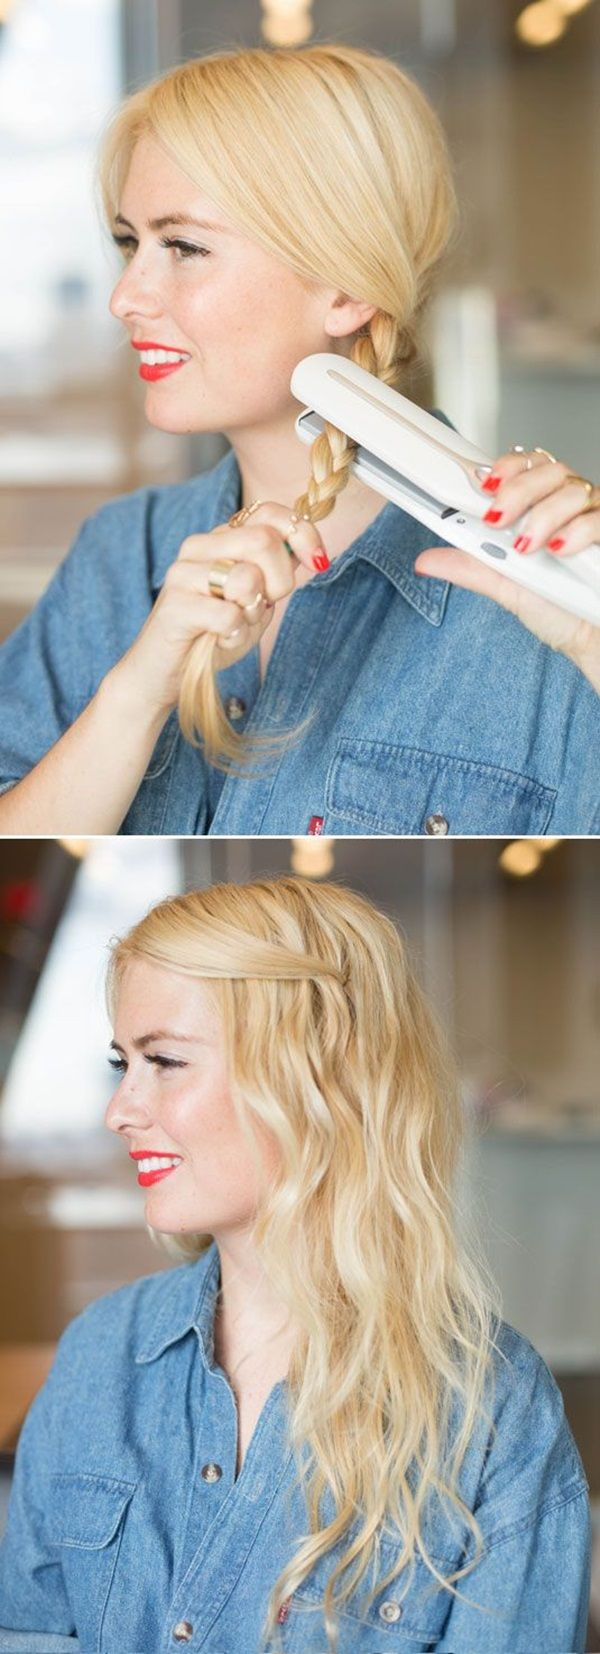 Quick Hairstyle Tutorials For Office Women : A woman who cuts her hair is about to change her life.